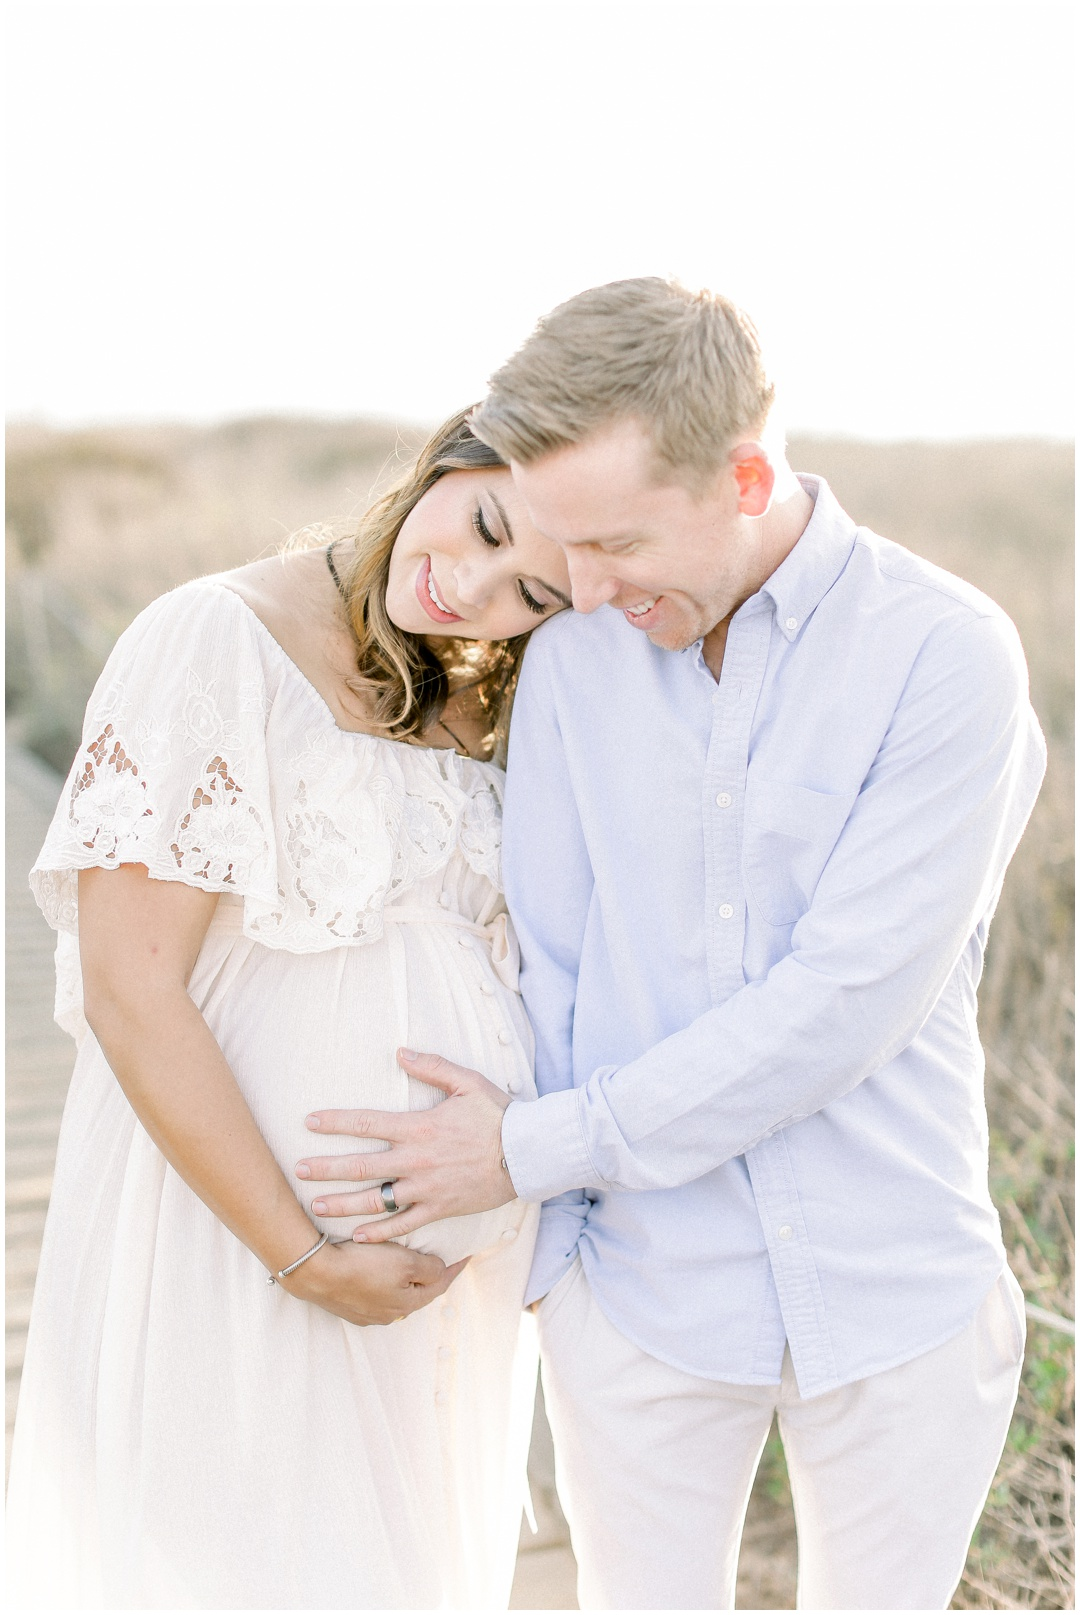 Orange_County_Maternity_Photographer_Newport_Beach_Family_Photographer_Newport_Beach_Newborn_Photographer_Orange_County_Family_Photographer_Cori_Kleckner_Photography_Huntington_Beach_Photographer_Nicole_Gire_Brandon_Gire__2568.jpg